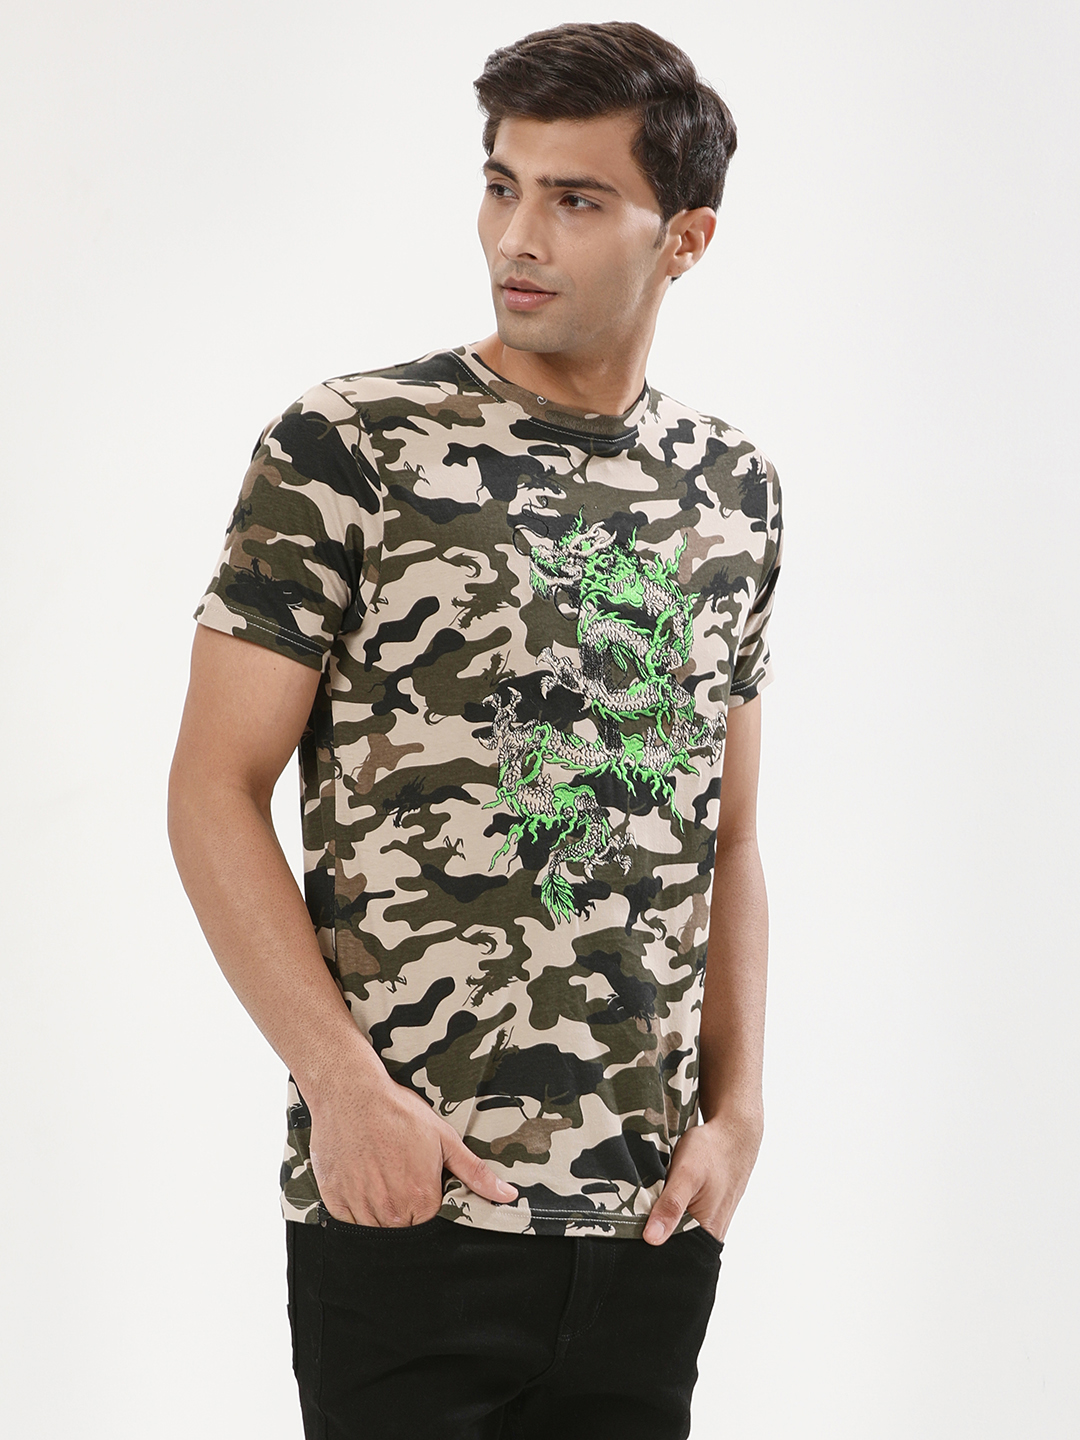 Brave Soul Khaki Camo Camo T-Shirt With Dragon Embroidery 1